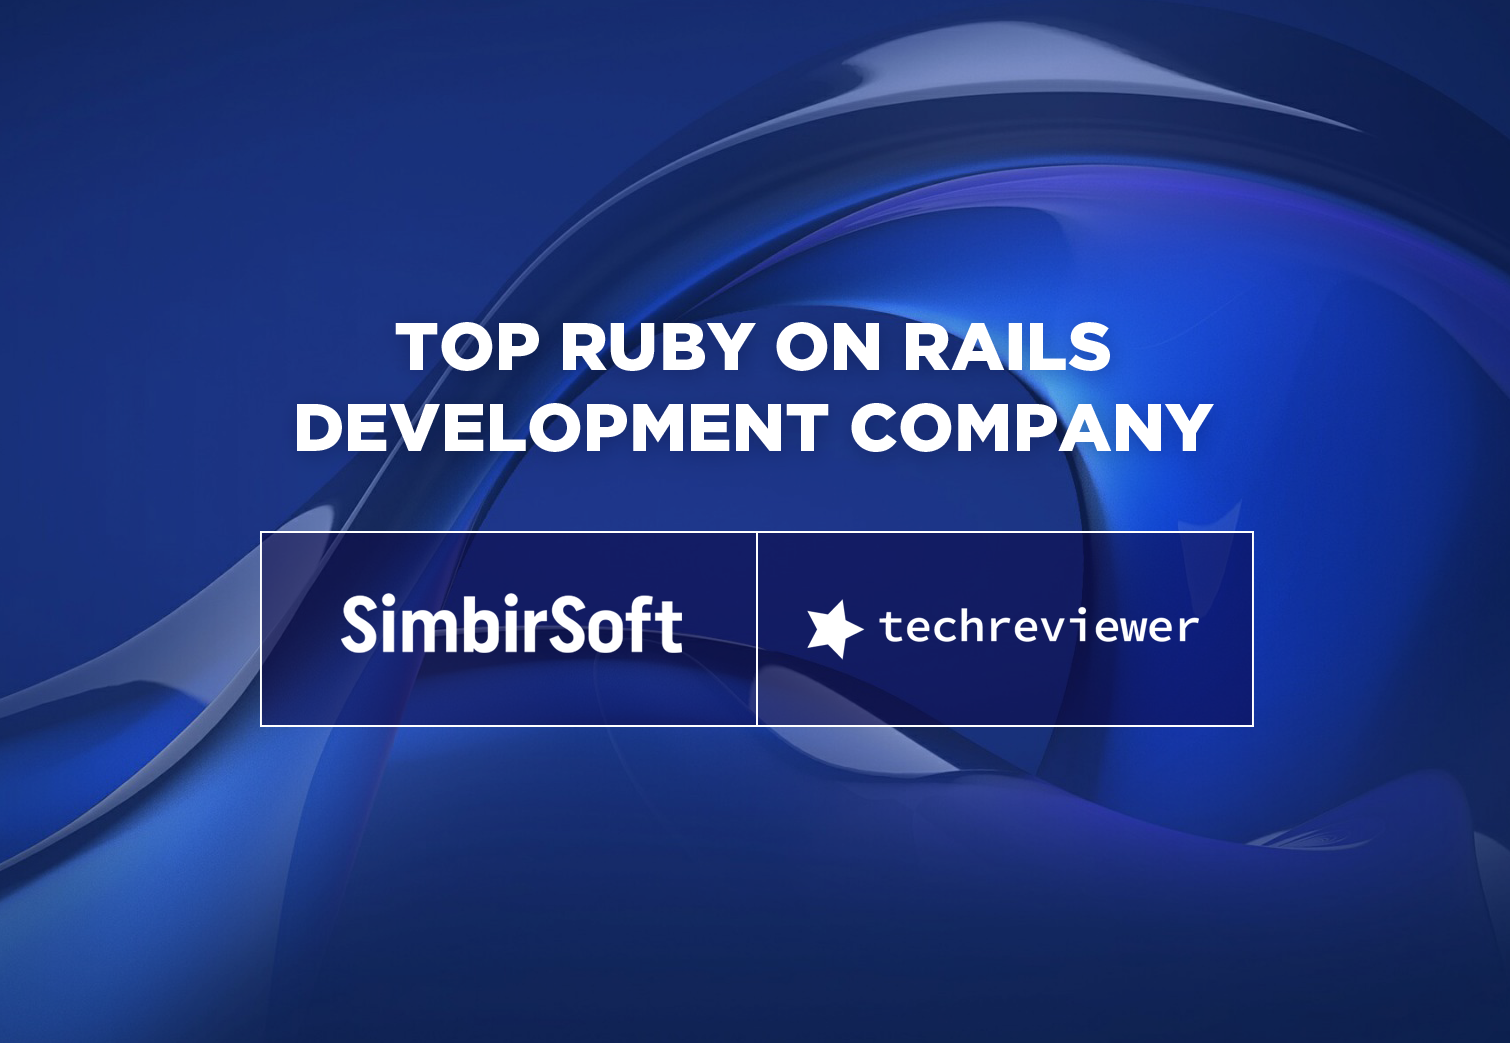 SimbirSoft is Recognized as a TOP RoR Development Company in 2019